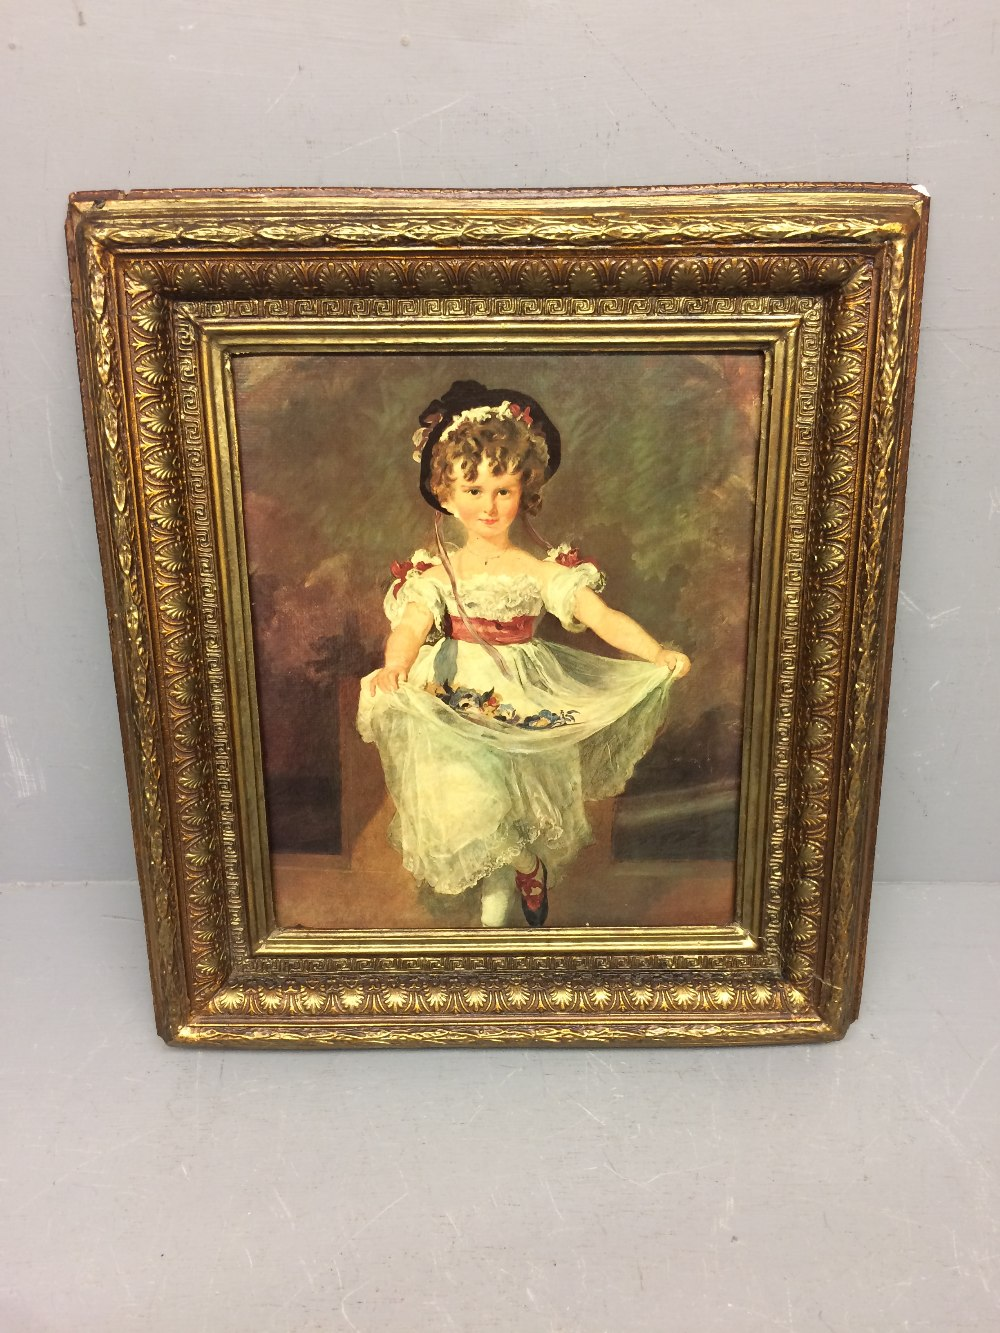 Lot 460 - C20th Olegraph 'The Young Dancer' 33 x 27 cm in gilt frame